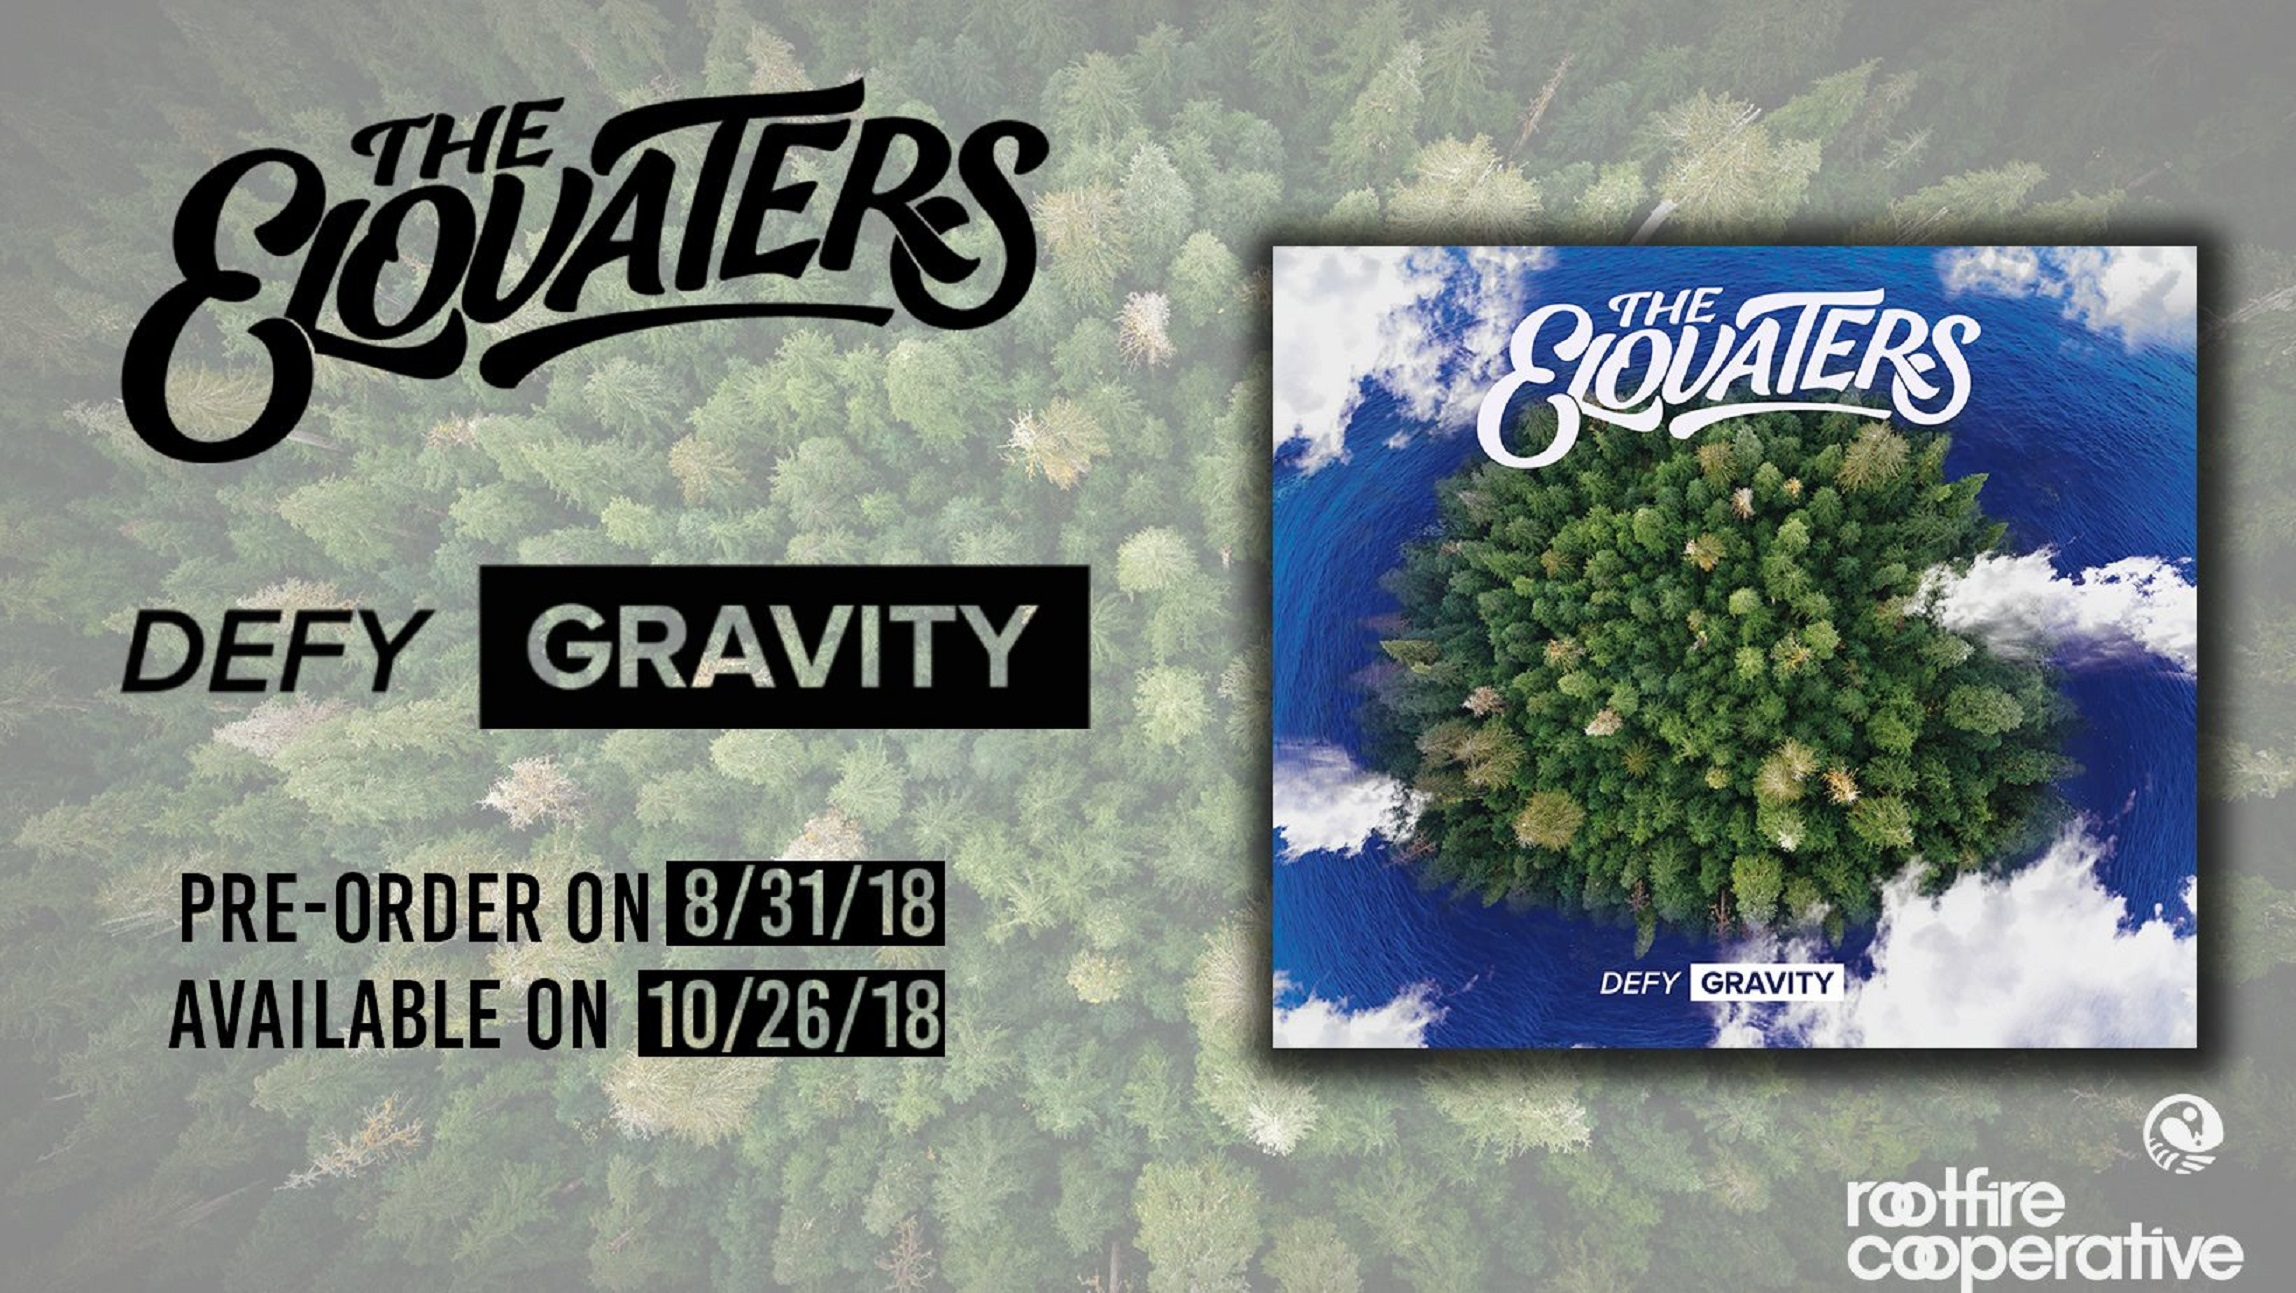 The Elovaters Announce New Album, Defy Gravity